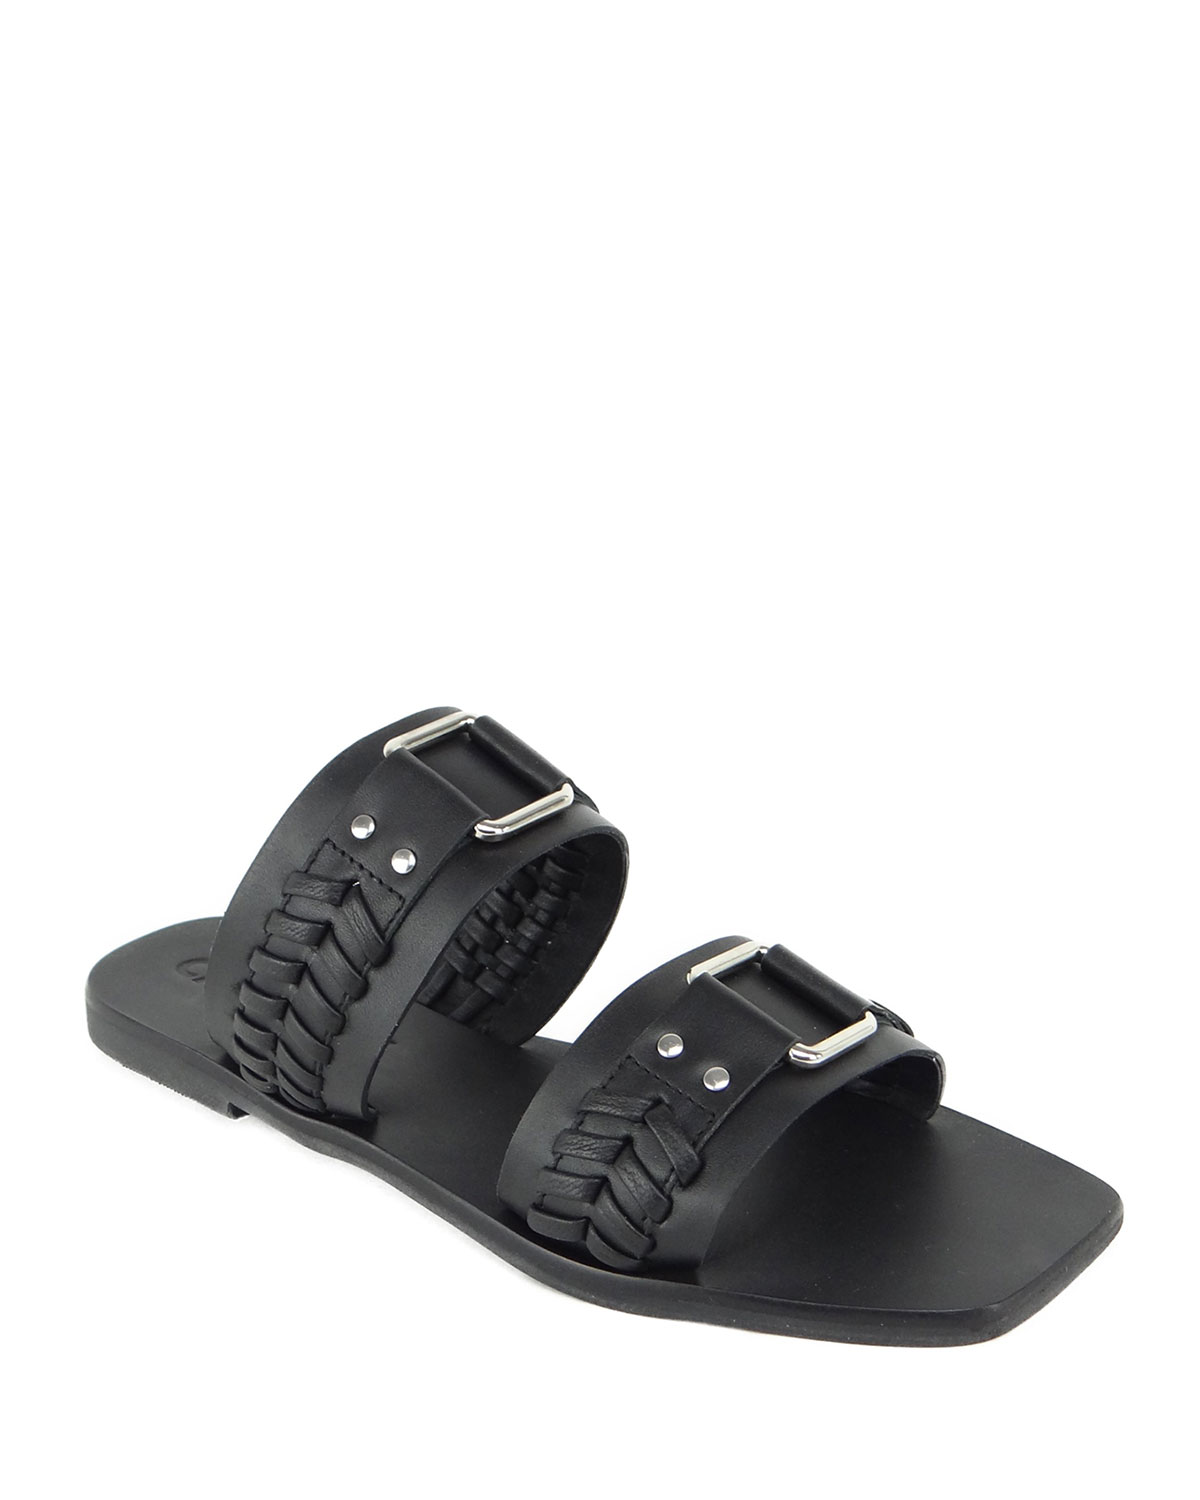 Tabby Braided Two-Band Slide Sandals